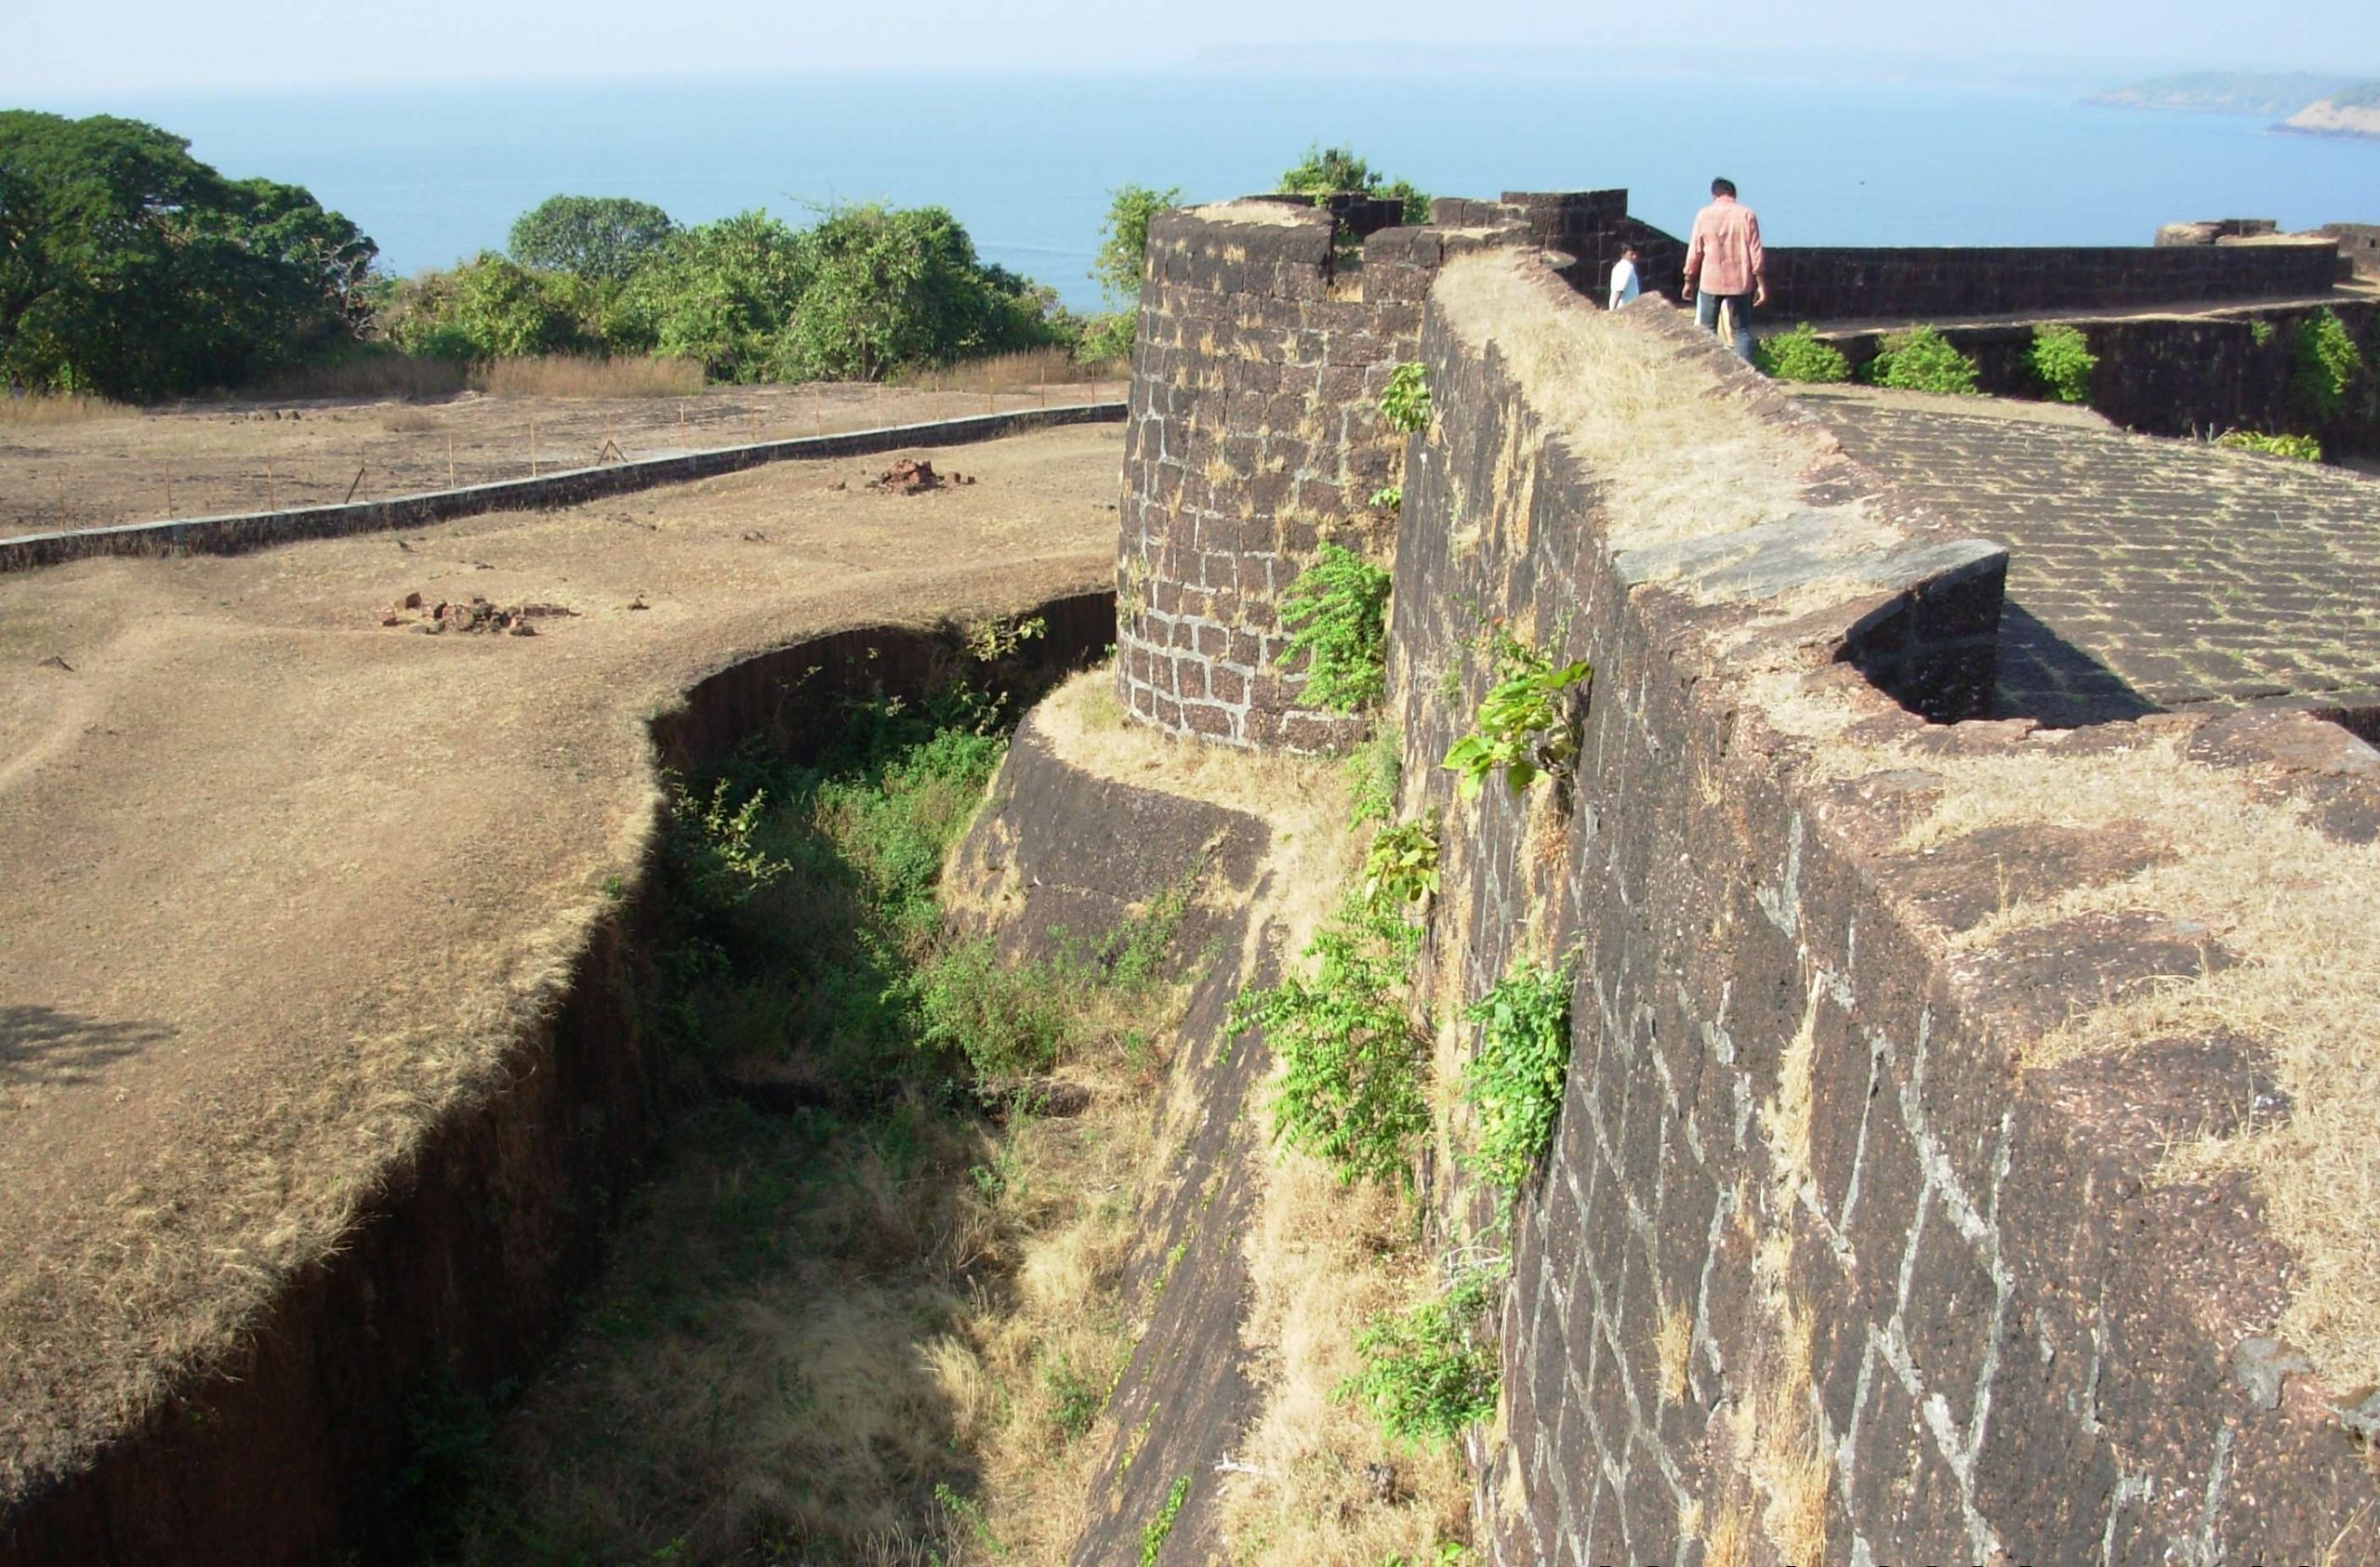 Jaigad Fort - The Fort with the Sea and Hills Surrounding It